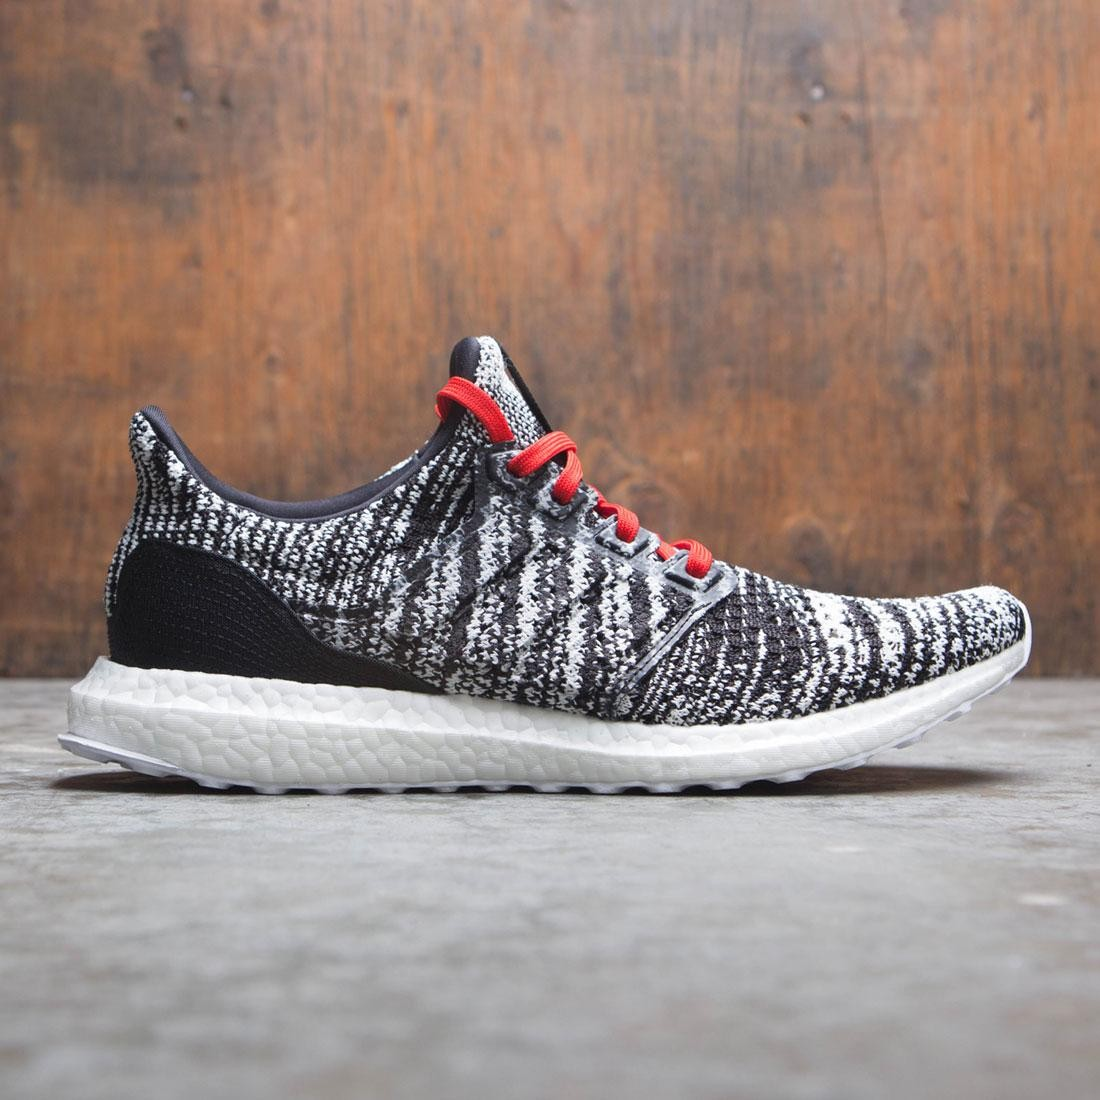 8f786ce3724 Adidas x Missoni Men UltraBOOST CLIMA black footwear white active red